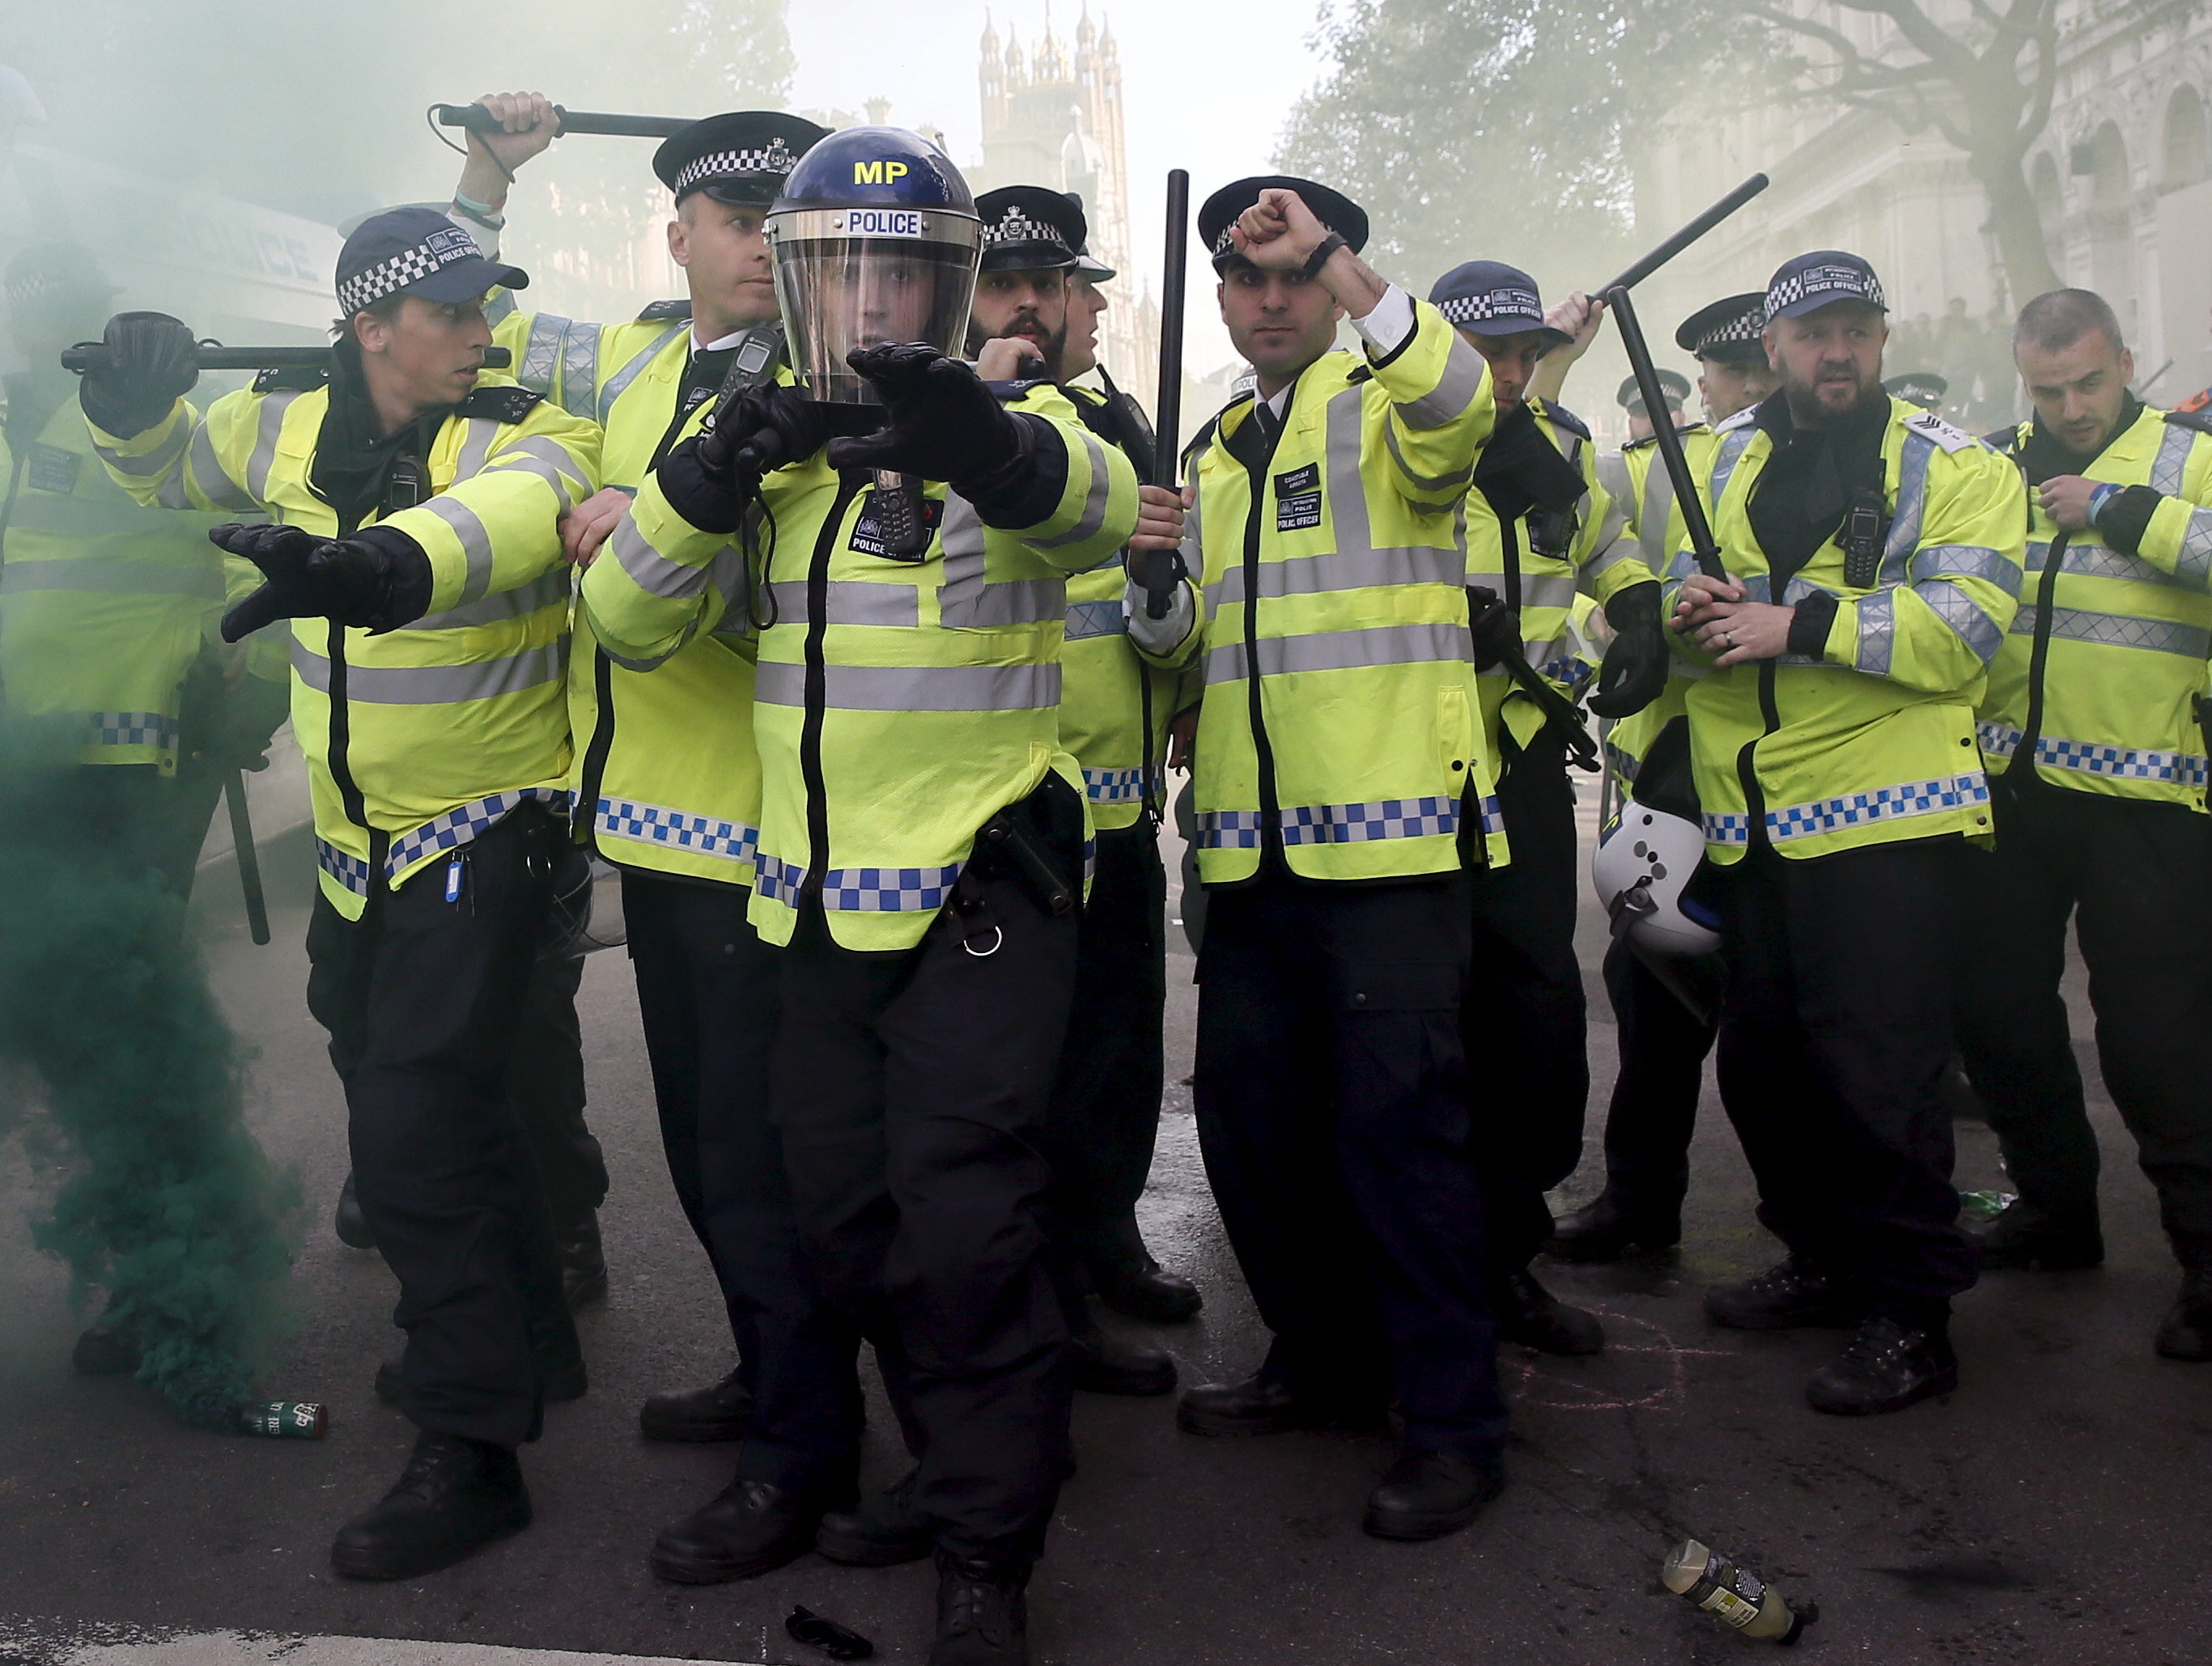 Police officers raise their batons as a smoke bomb goes off during a protest in central London. Picture: Reuters/Stefan Wermuth